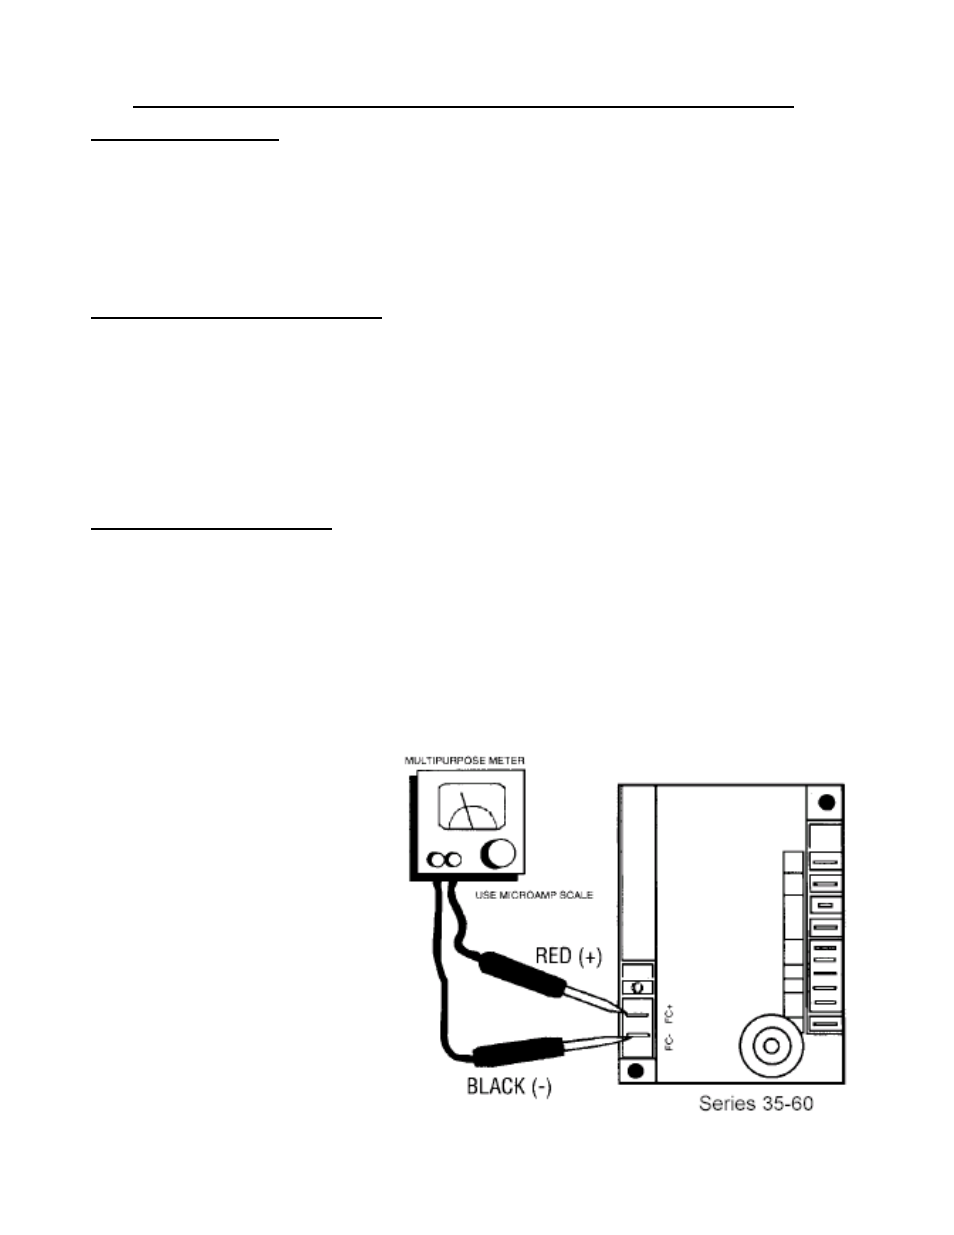 sequence of operation for fenwal 35 60 dsi control schwank rh manualsdir com Back of Picture of Nintendo DSi System Wii Operations Manual